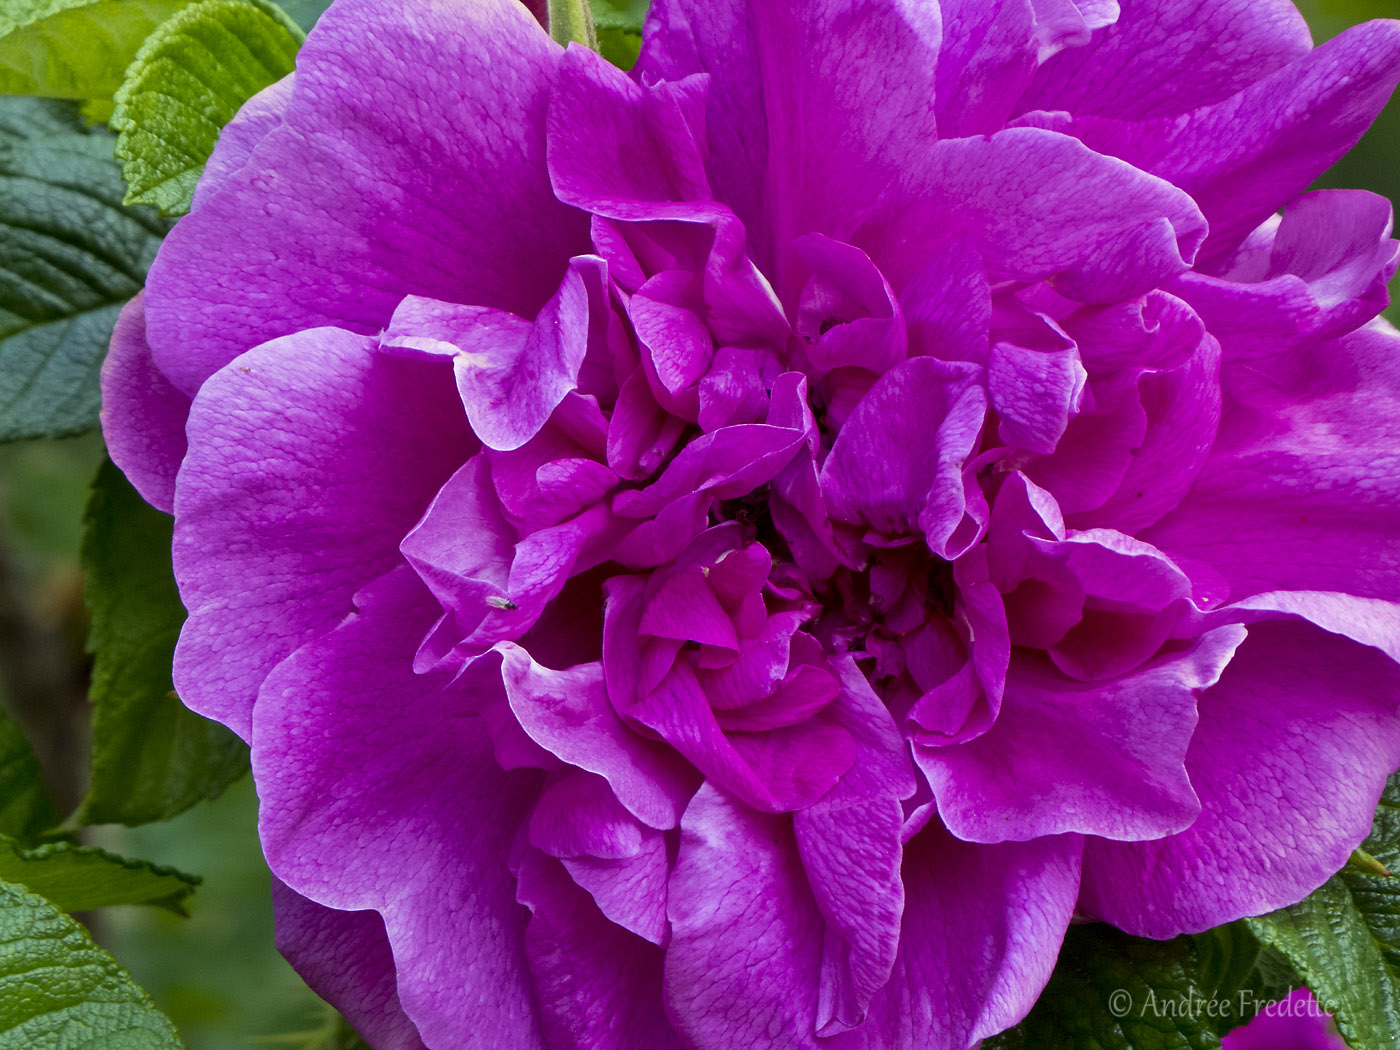 Rosa rugosa. Photo by Andrée Fredette